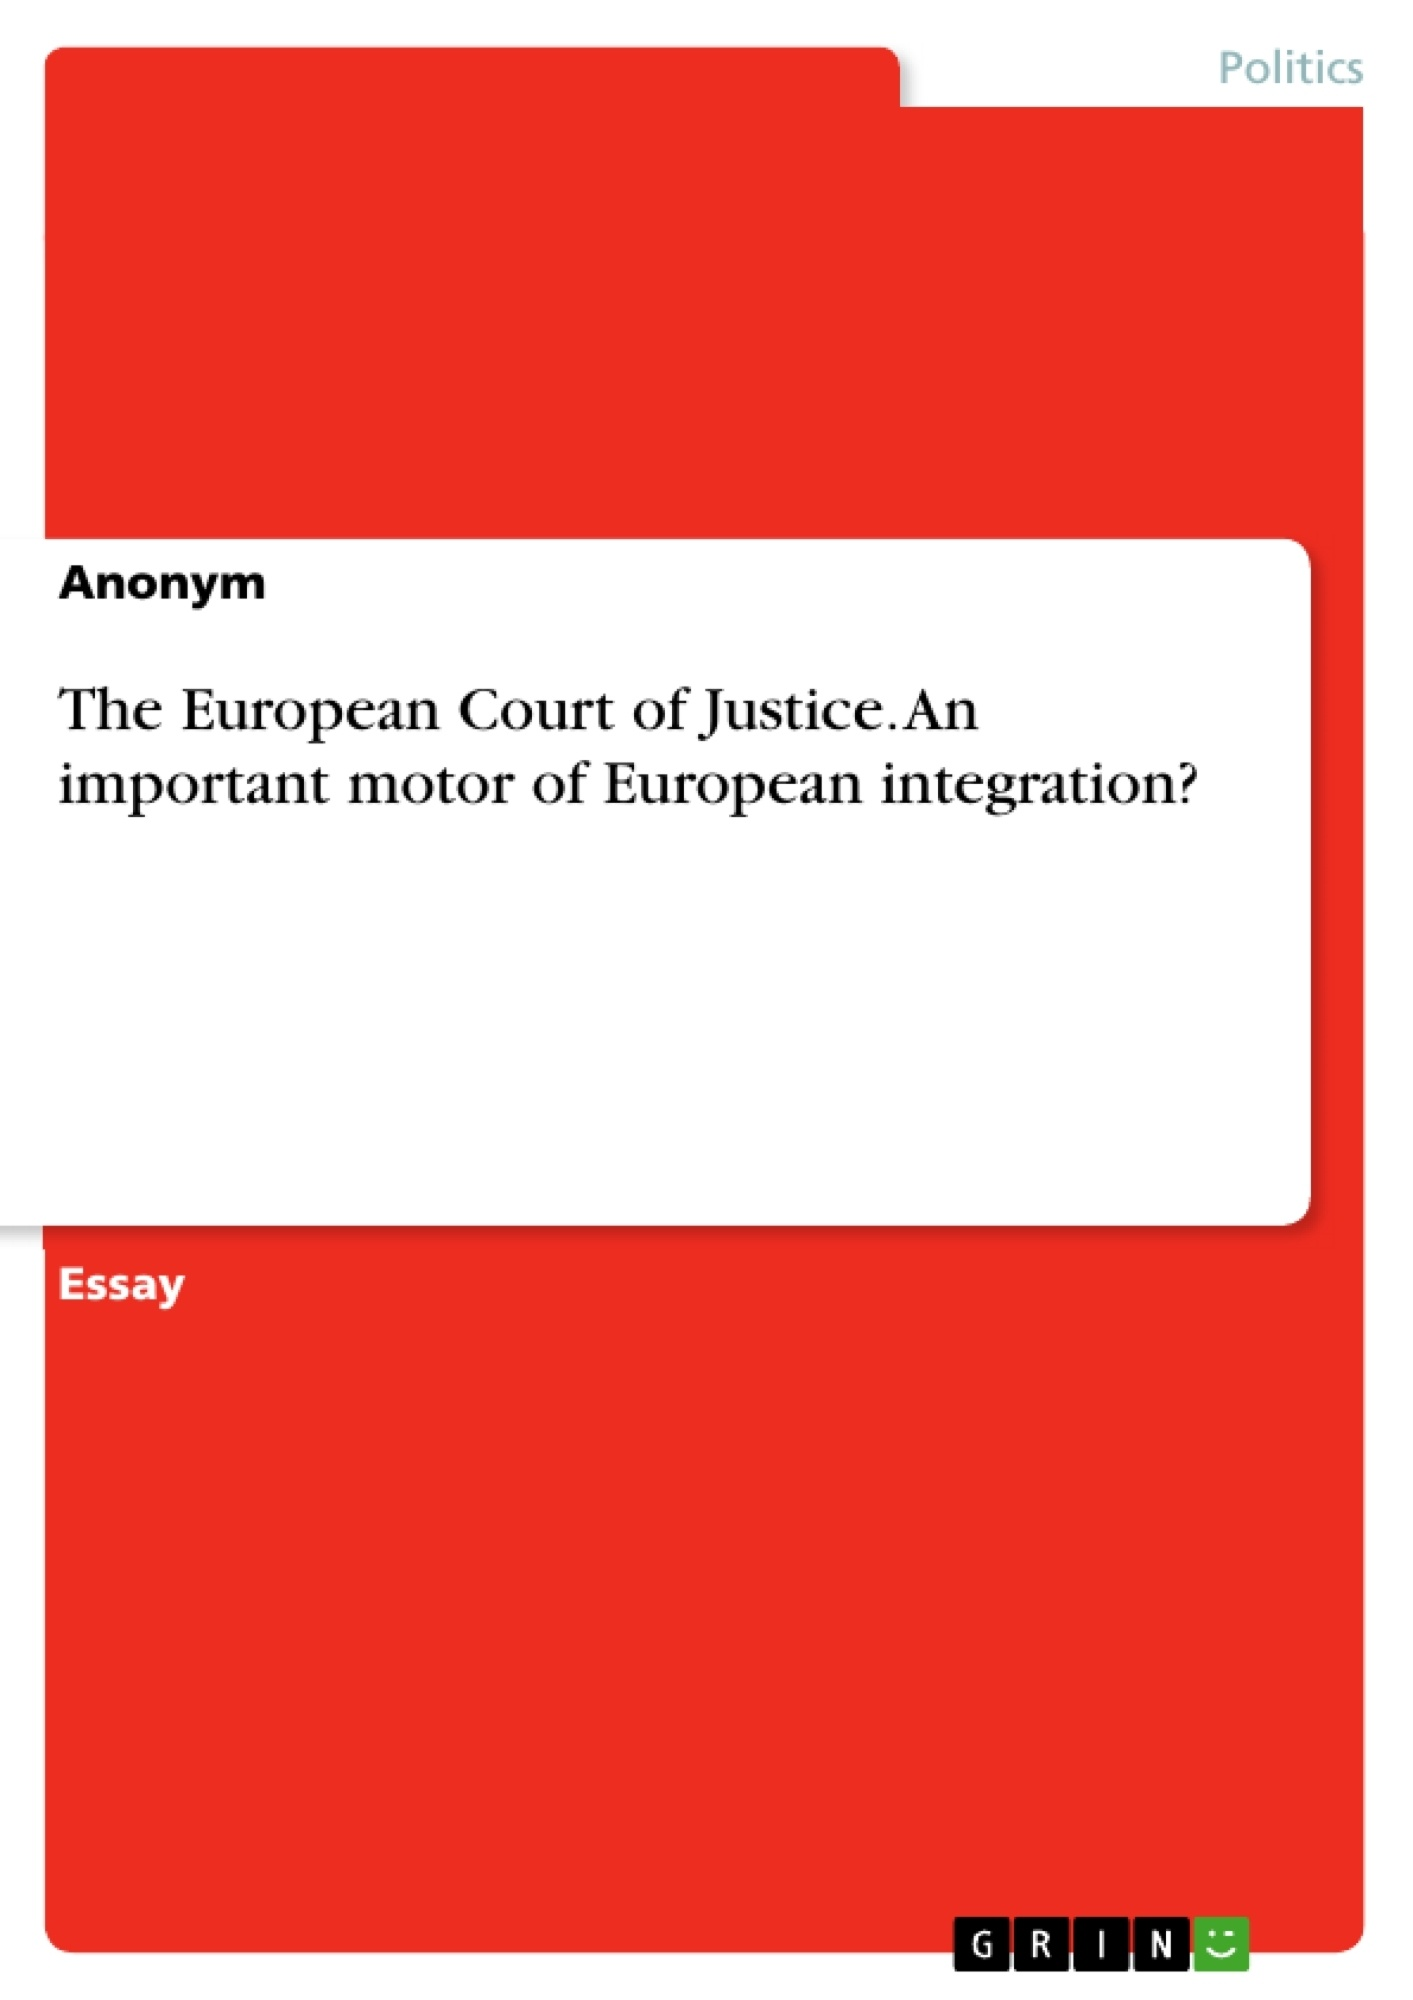 Title: The European Court of Justice. An important motor of European integration?